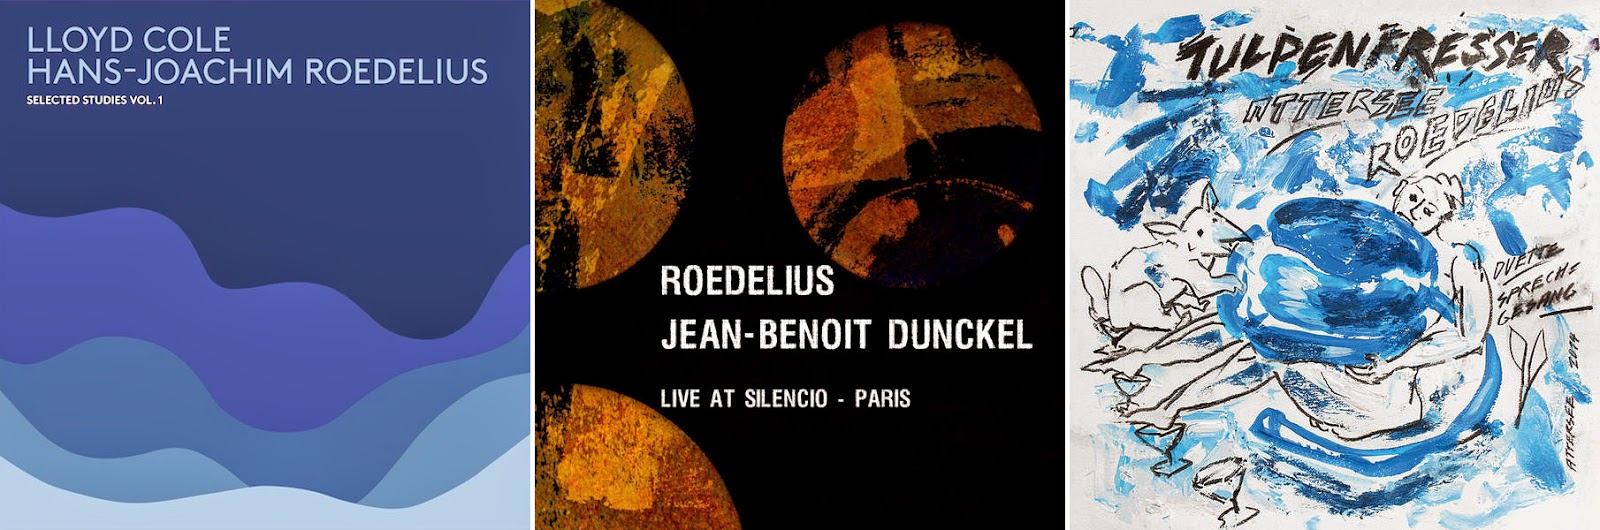 Cole / Roedelius – Selected Studies / Roedelius / Dunckel – Live at Silencio / Attersee / Roedelius – Tulpenfresser / source : discogs, discogs + qobuz